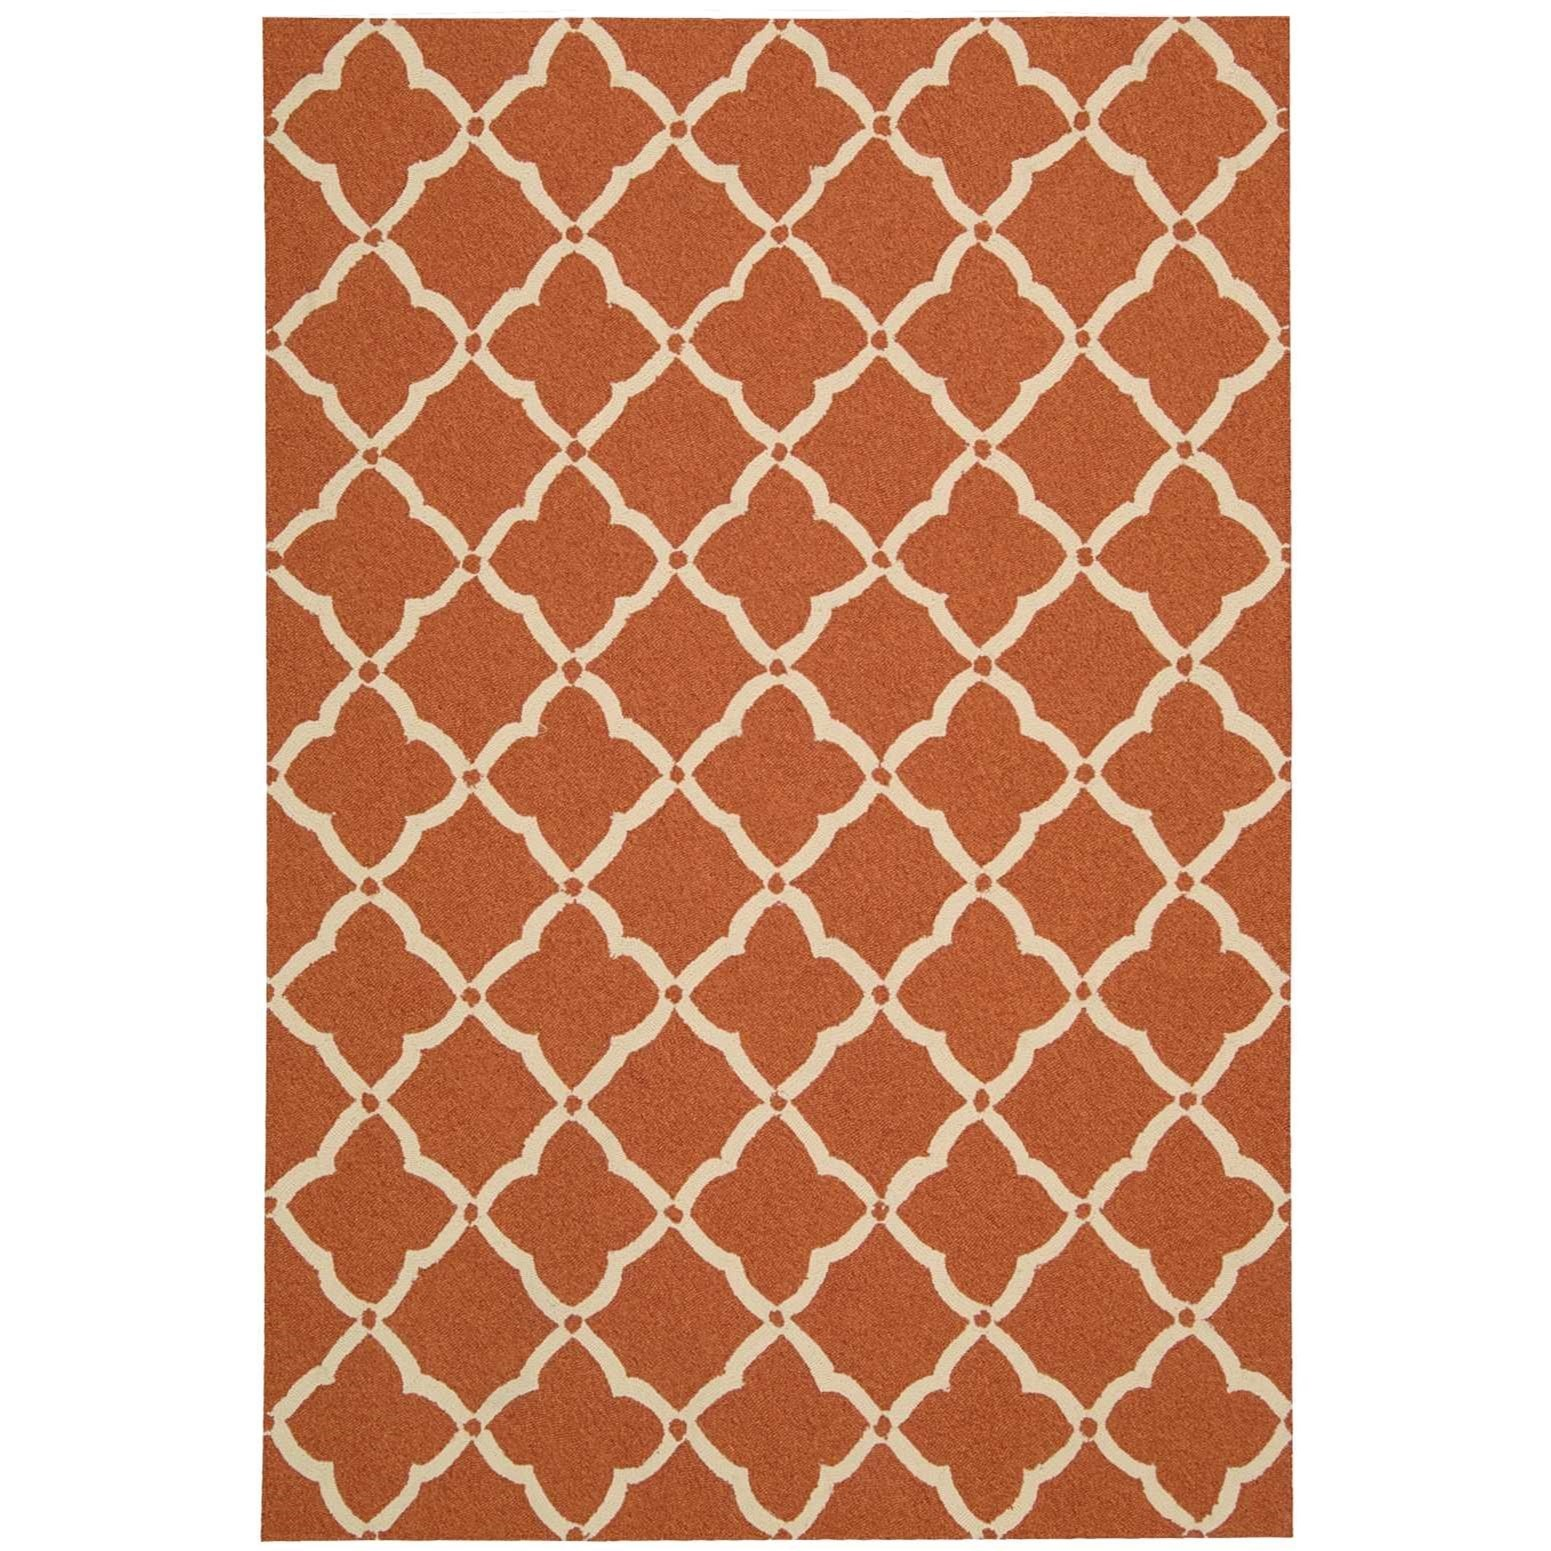 Portico 2' x 3' Orange Rectangle Rug by Nourison at Home Collections Furniture